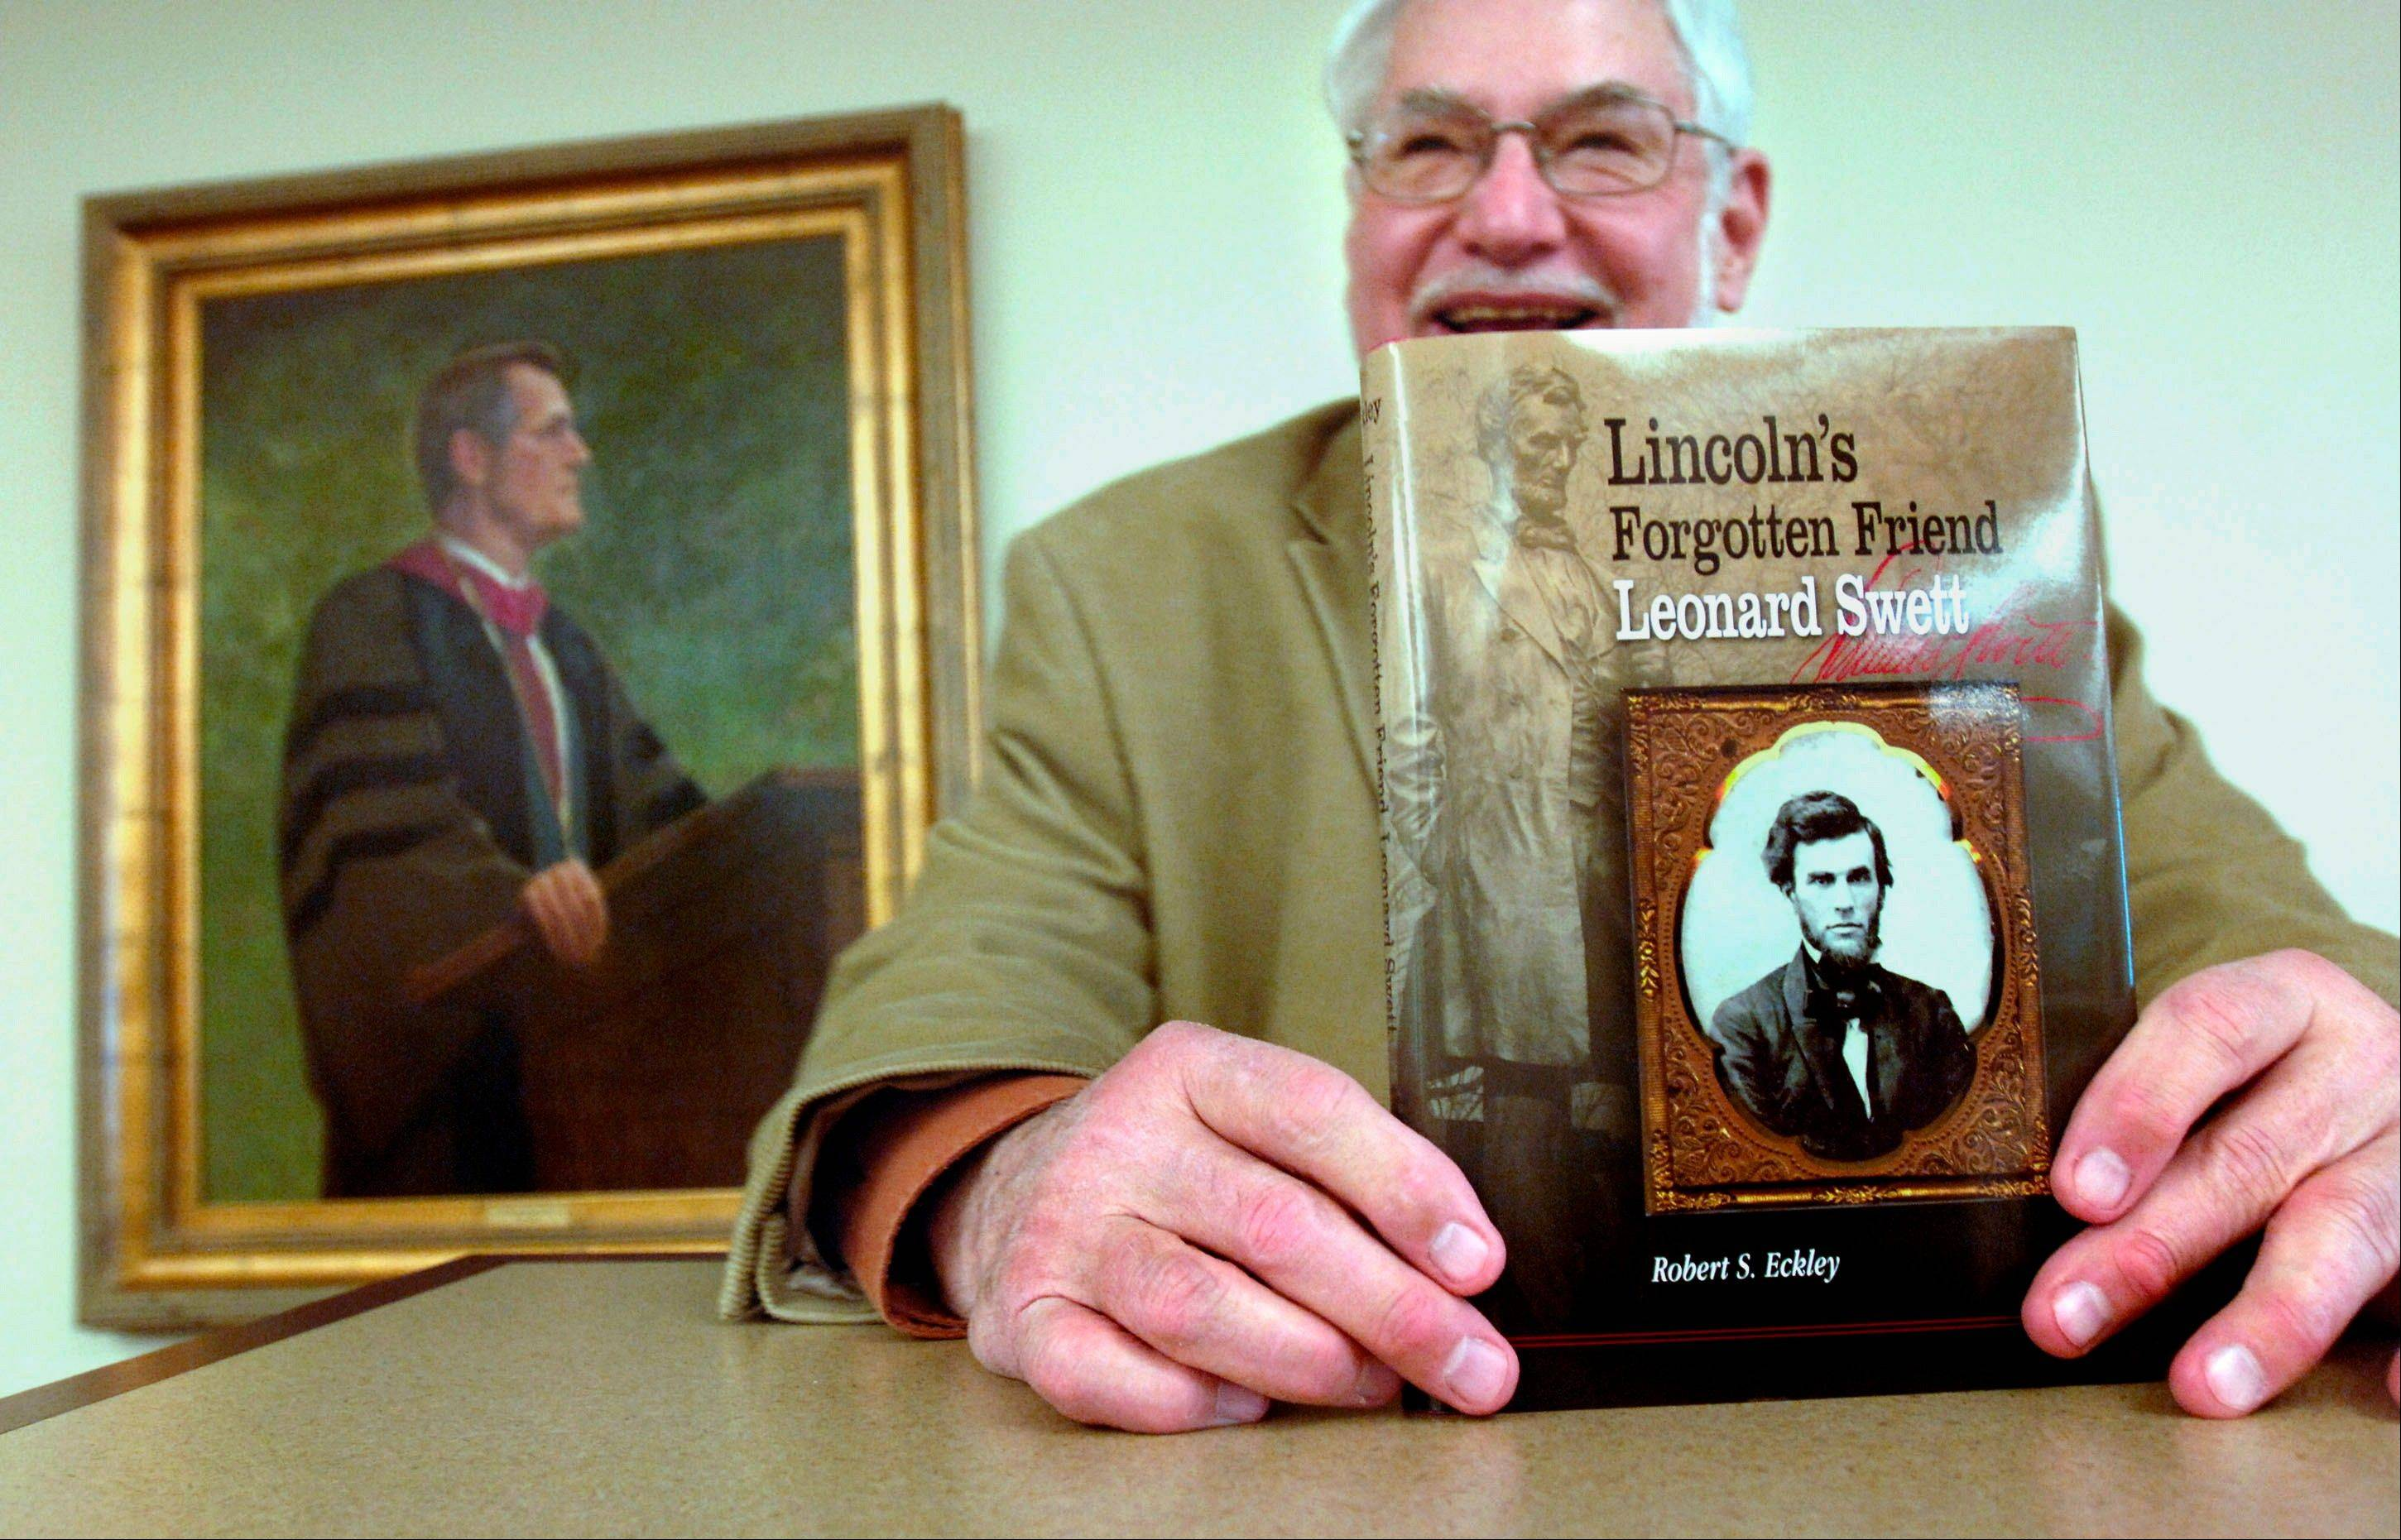 Associated Press Prof. Robert Bray holds a copy of Robert S. Eckley�s �Lincoln�s Forgotten Friend, Leonard Swett,� at Illinois Wesleyan University�s Ames Library in Bloomington. A portrait of Eckley, a former president of IWU, is at left.